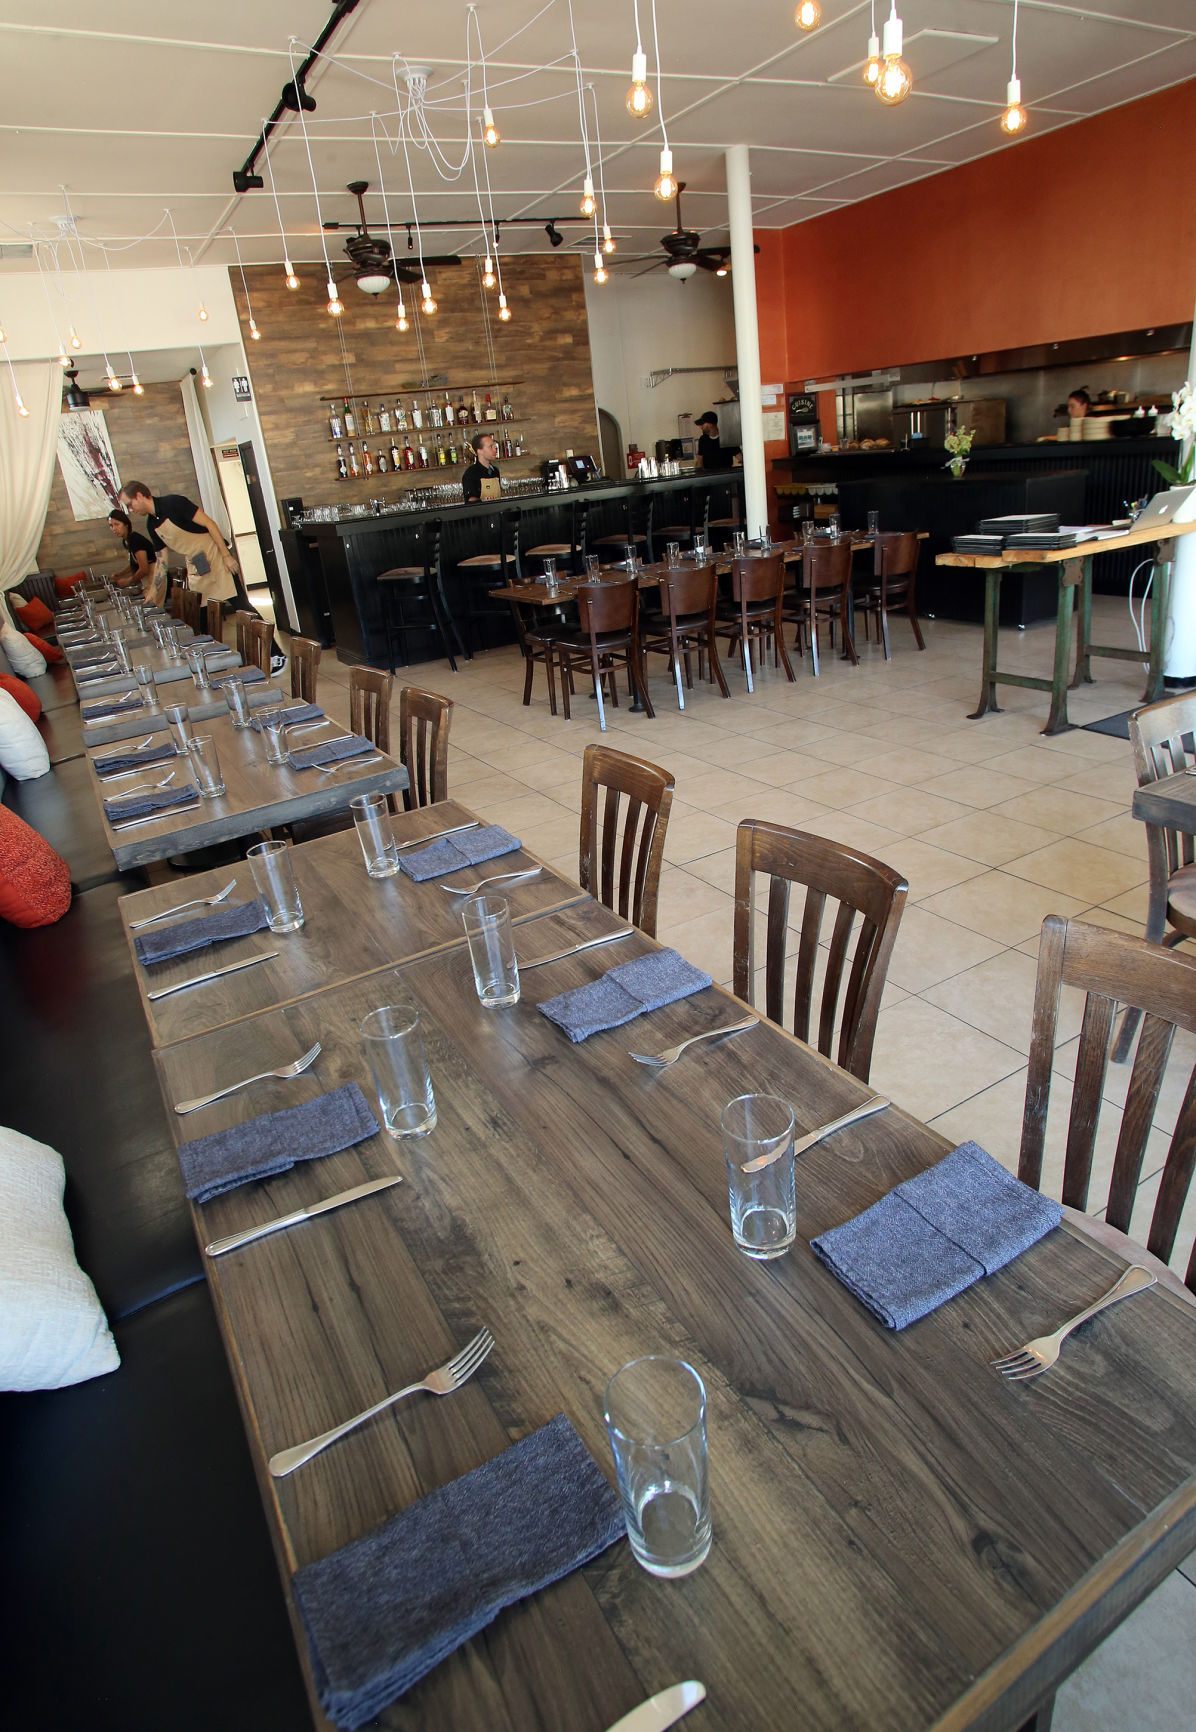 New restaurant Pêche dedicated to diners' delicious experience